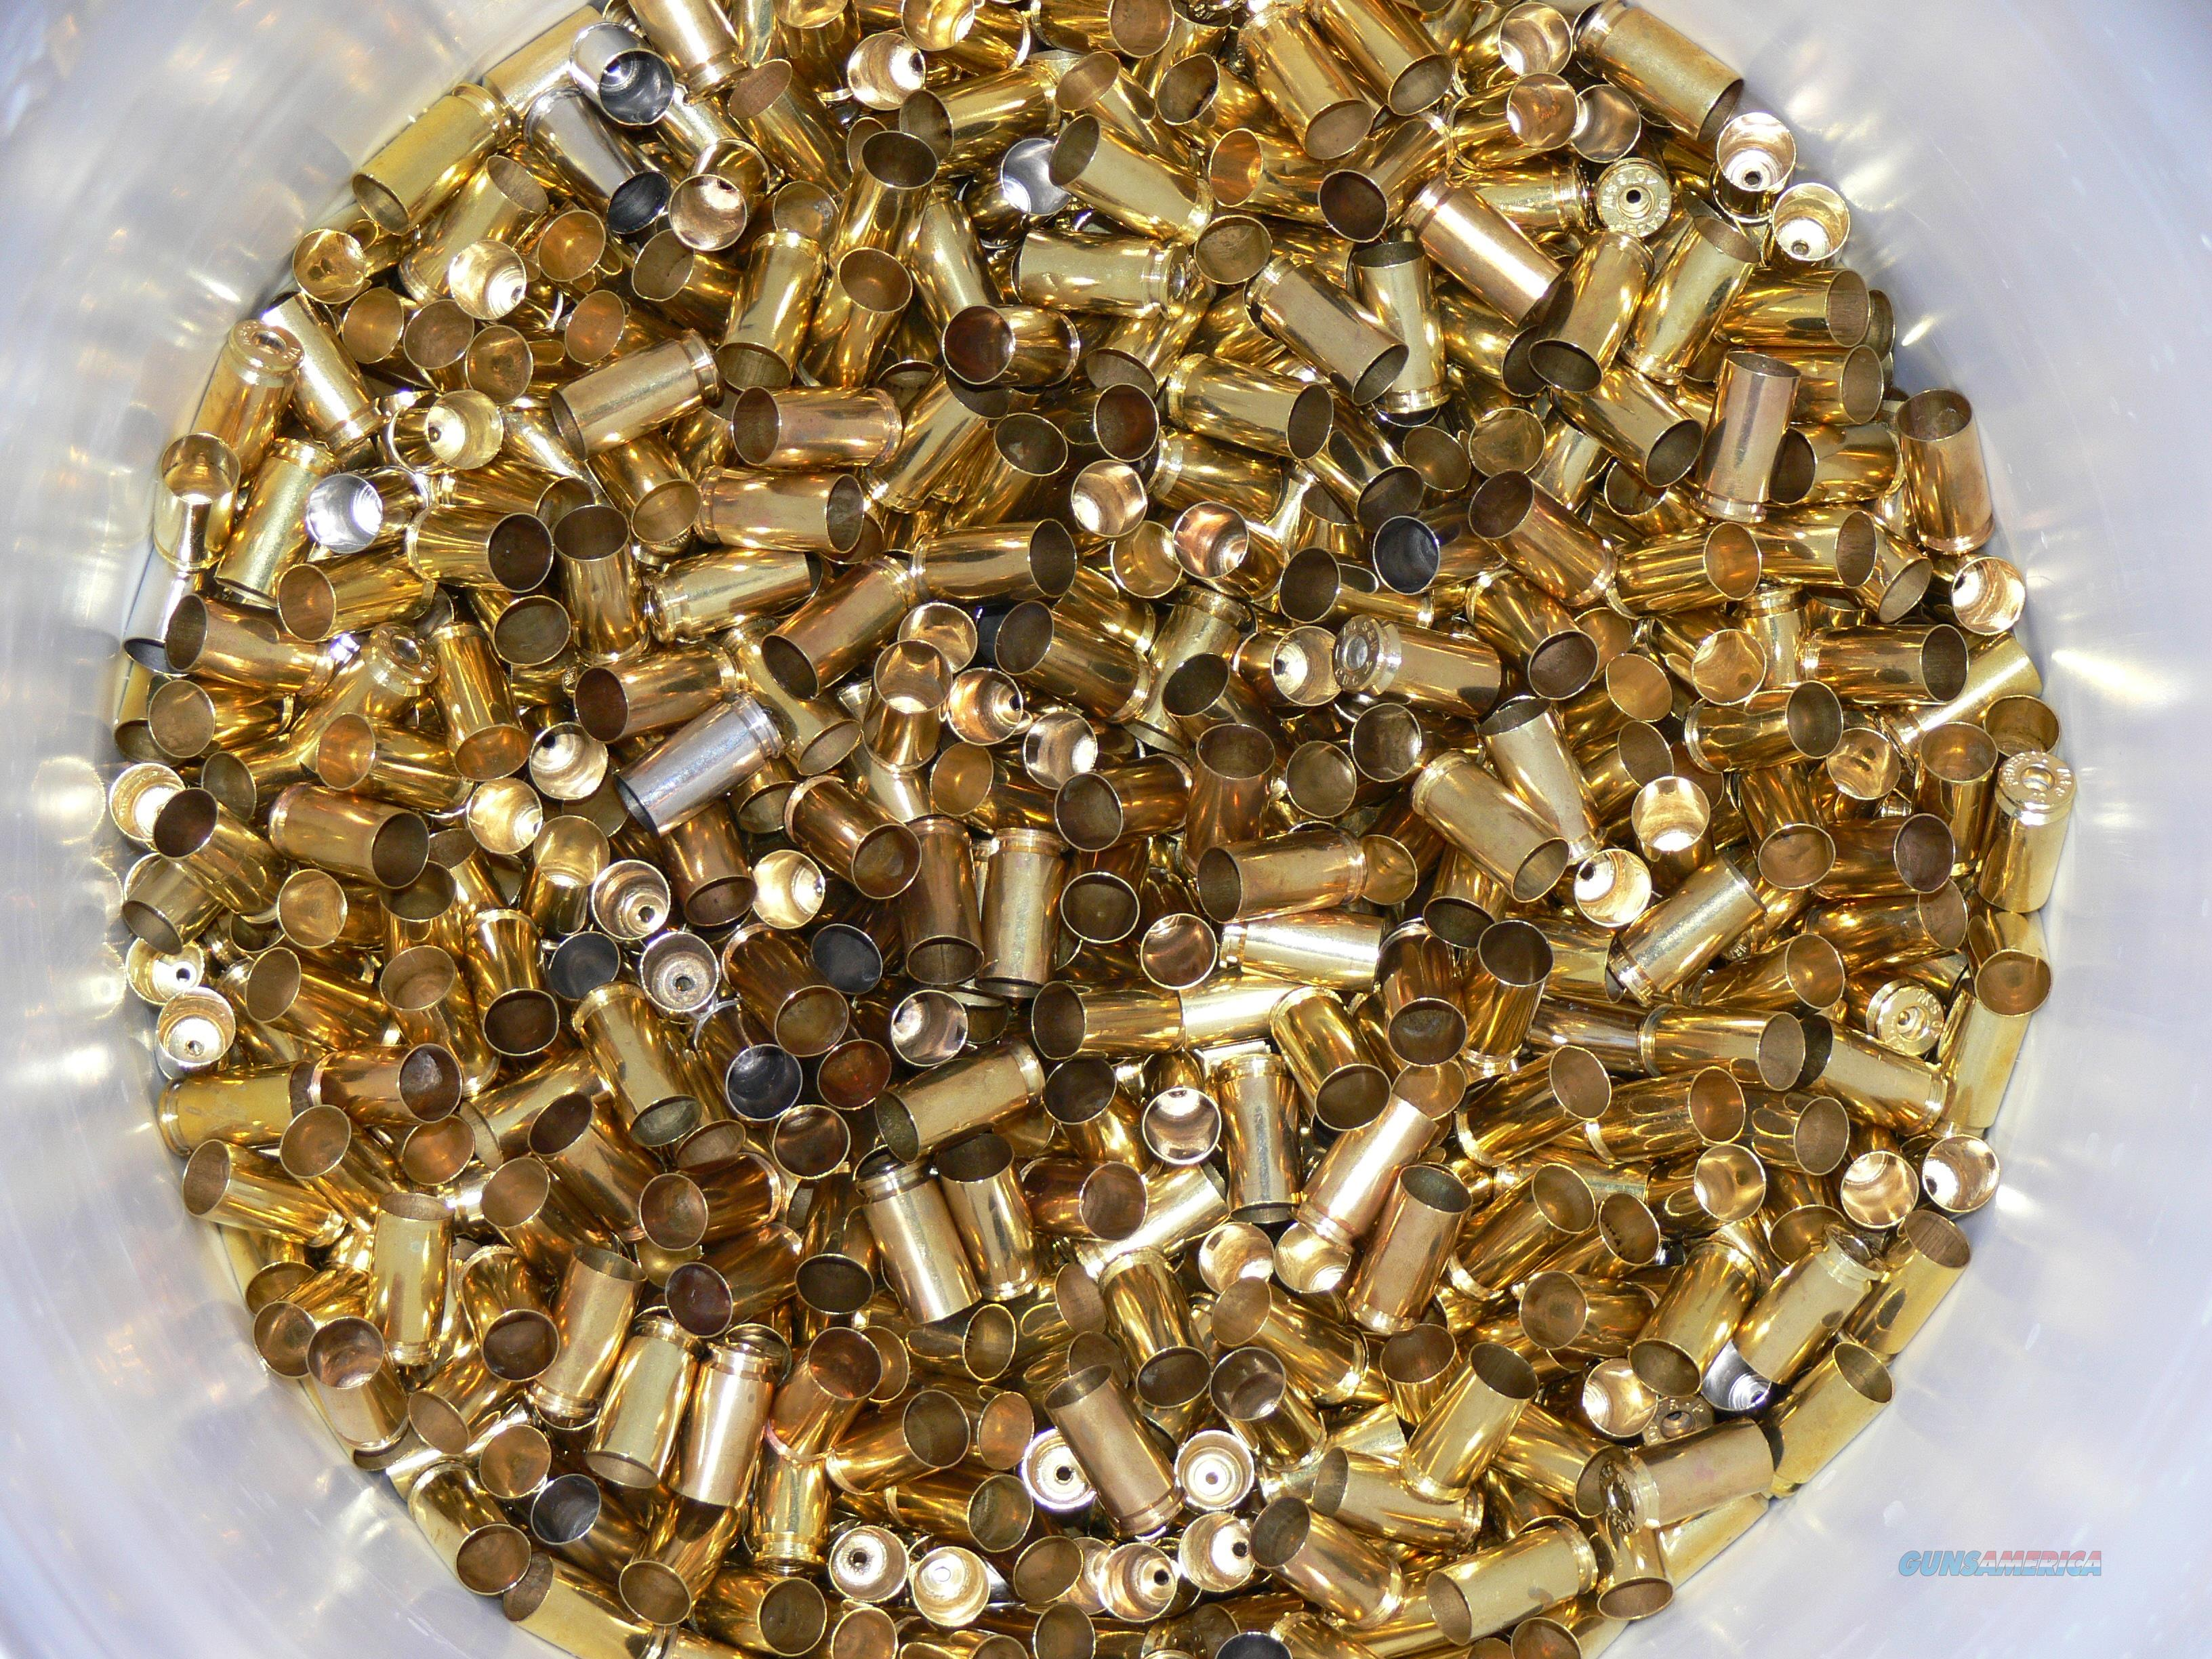 40 cal Reloading Brass - 350 count  Non-Guns > Reloading > Components > Brass